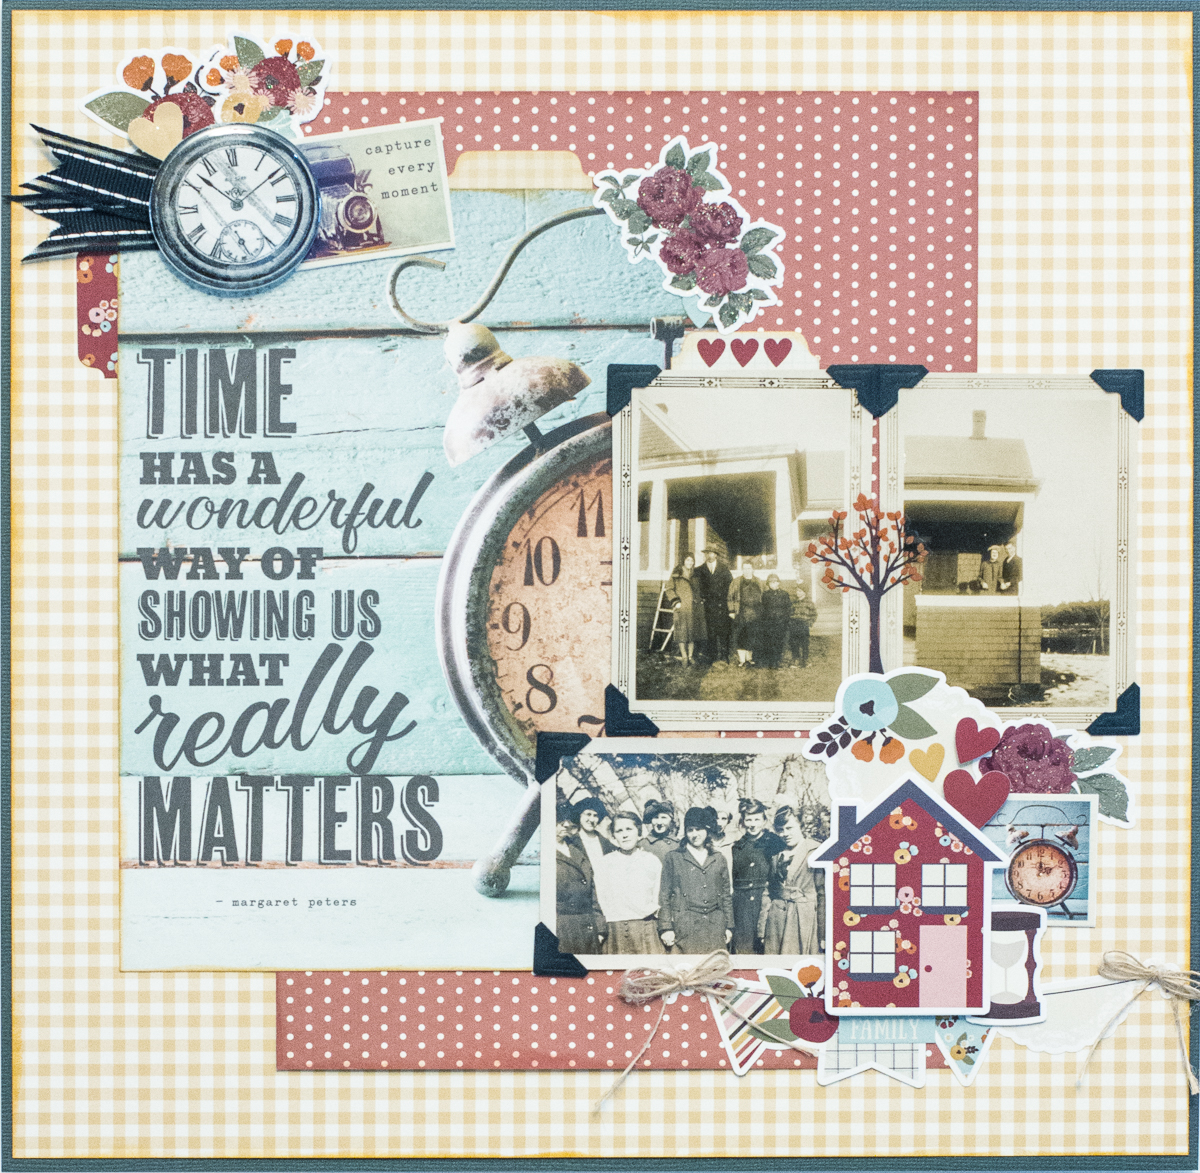 Scrapbooking layout using Simple Stories Vintage Blessings collection / October Sketchy Challenge / Scrapbooking with sketches